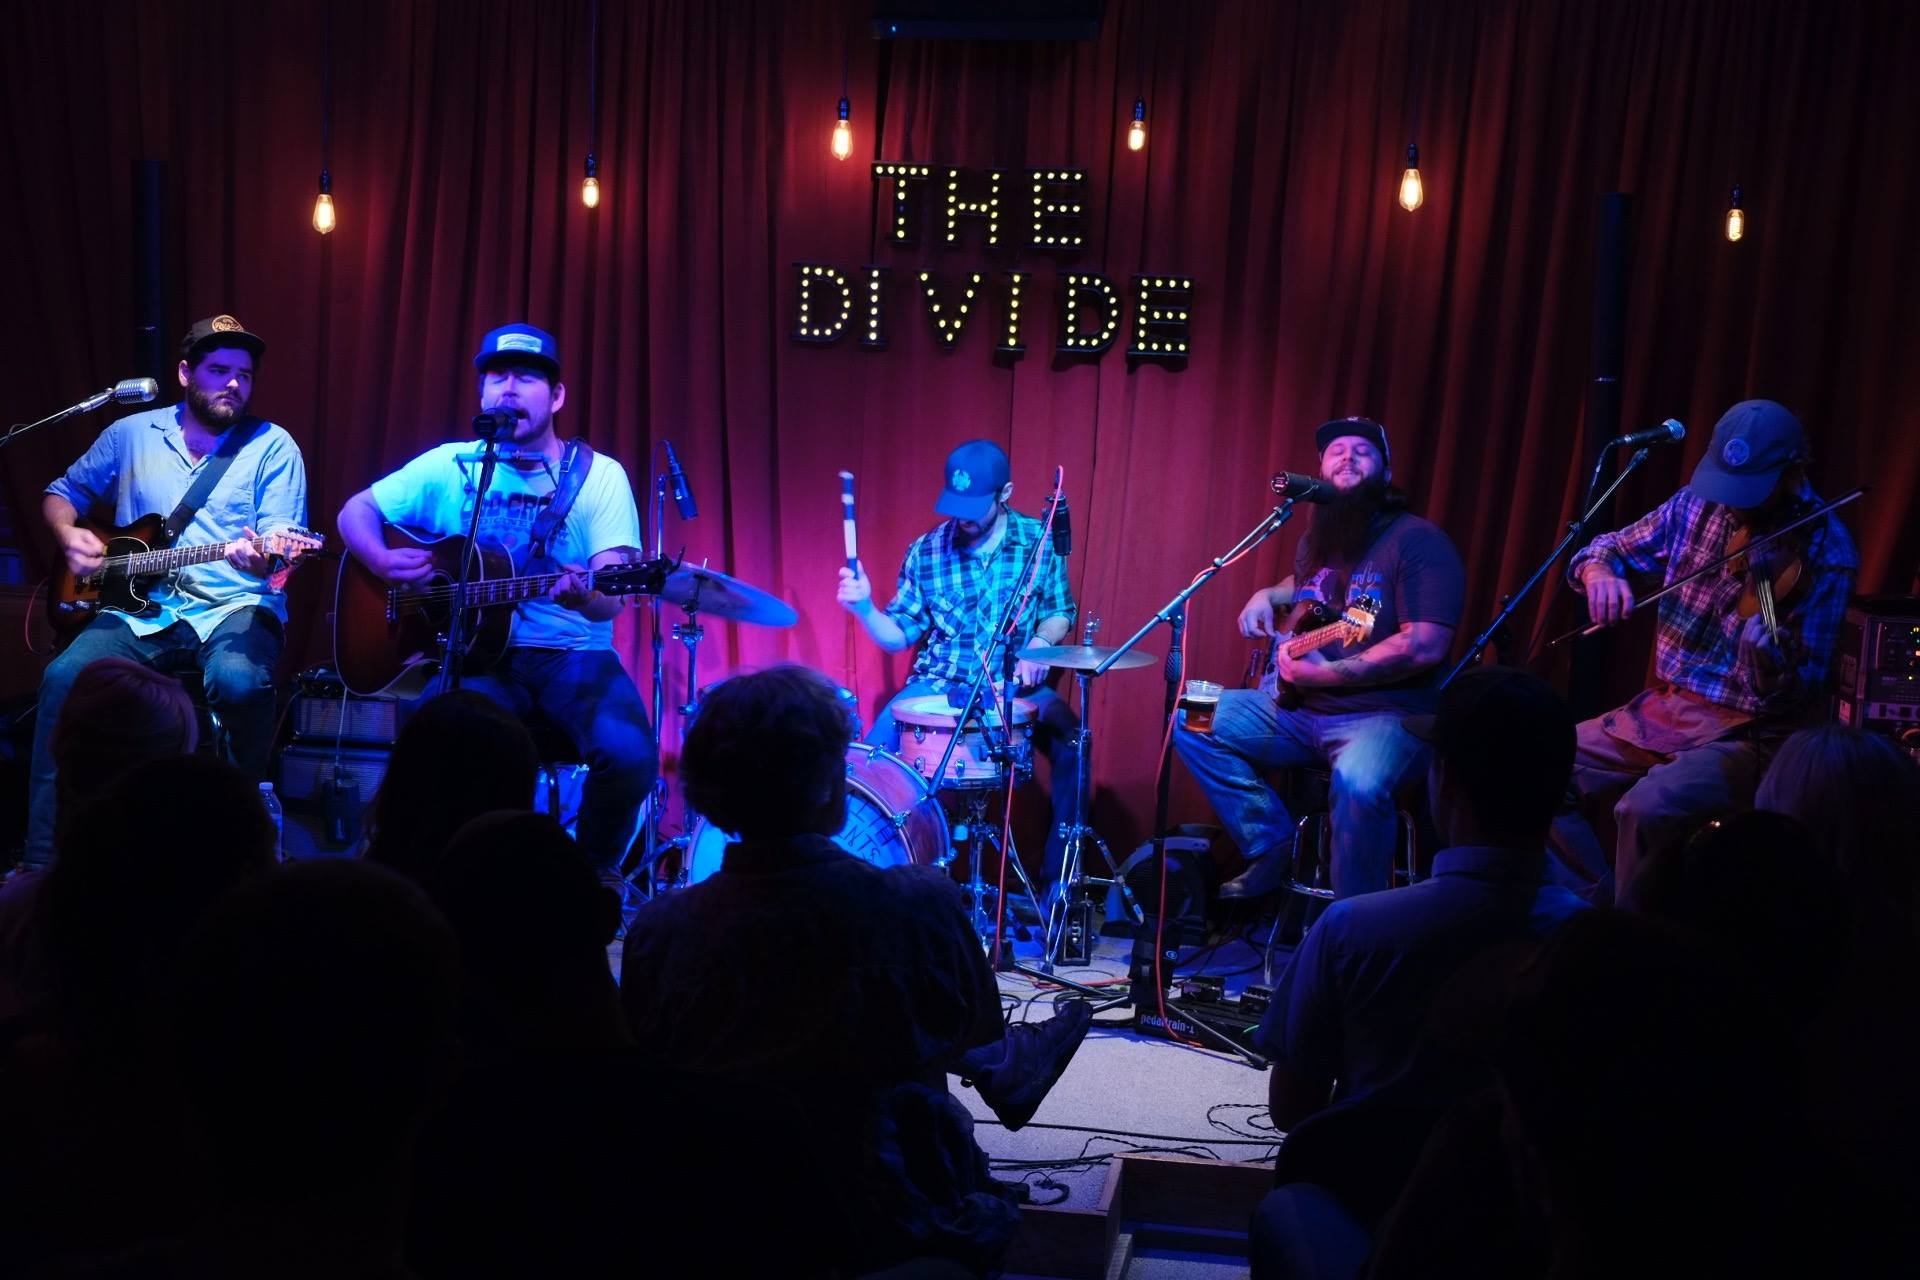 Live_from_the_divide_-shane_smith___the_saints_small